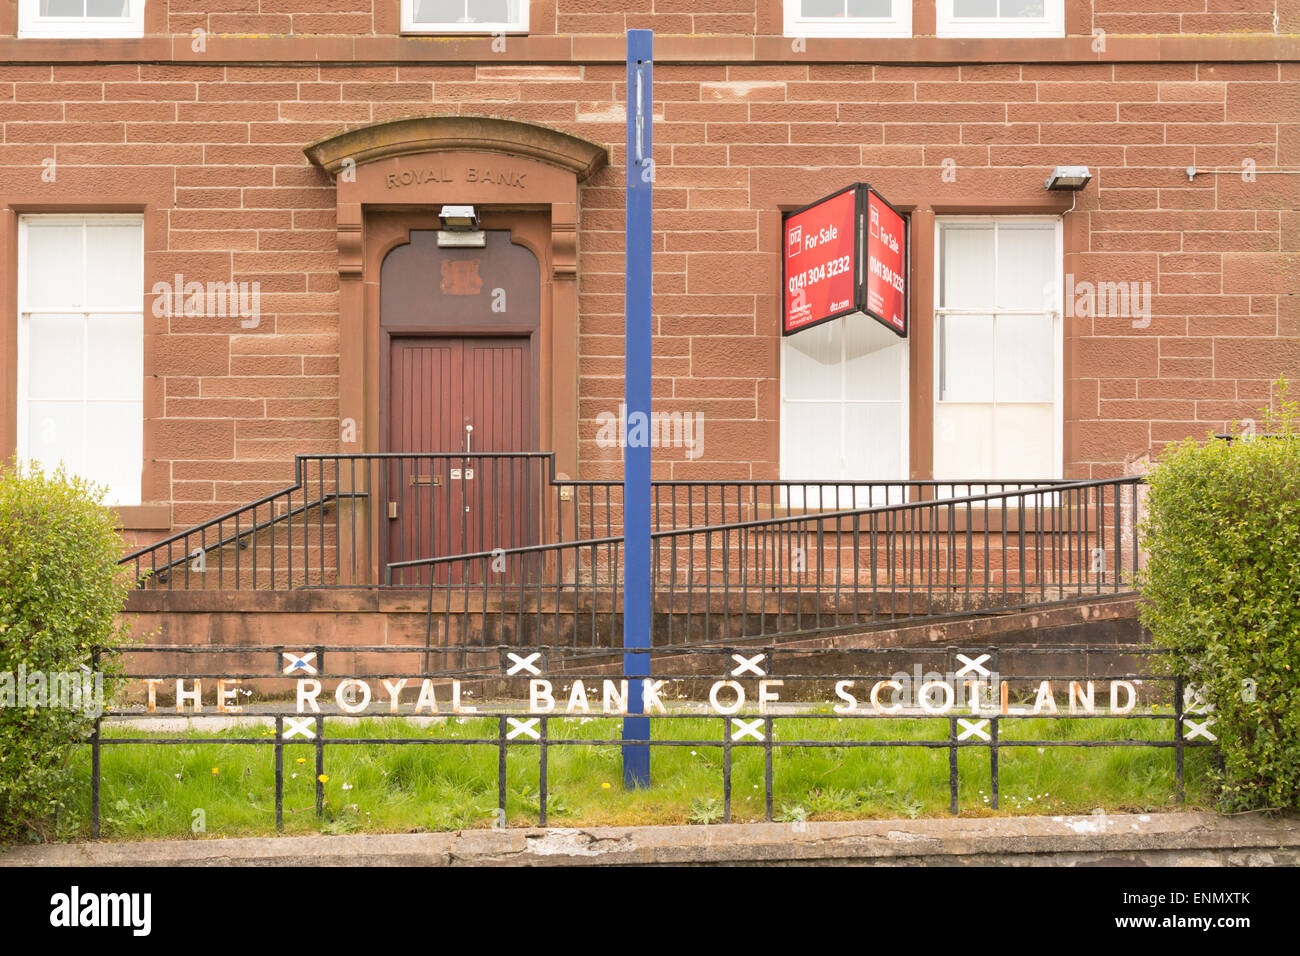 The Royal Bank of Scotland, Drymen - rural branch closed and up for sale - Stock Image